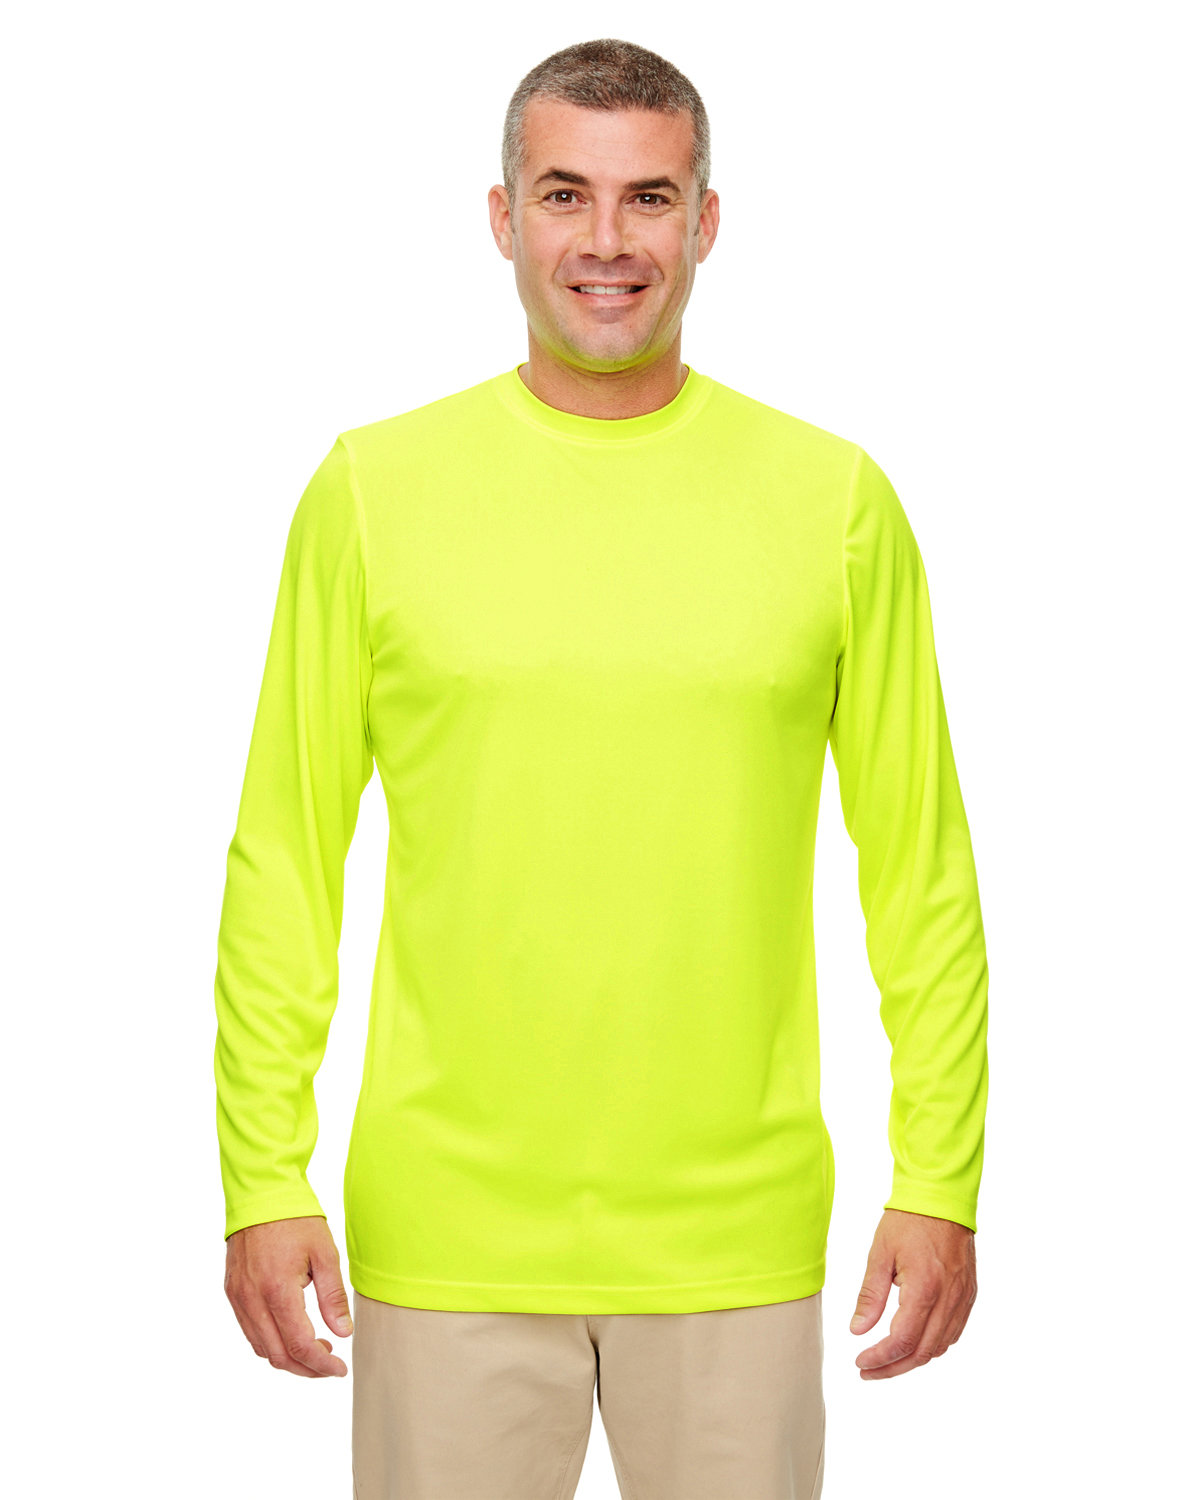 UltraClub Men's Cool & Dry Performance Long-Sleeve Top BRIGHT YELLOW